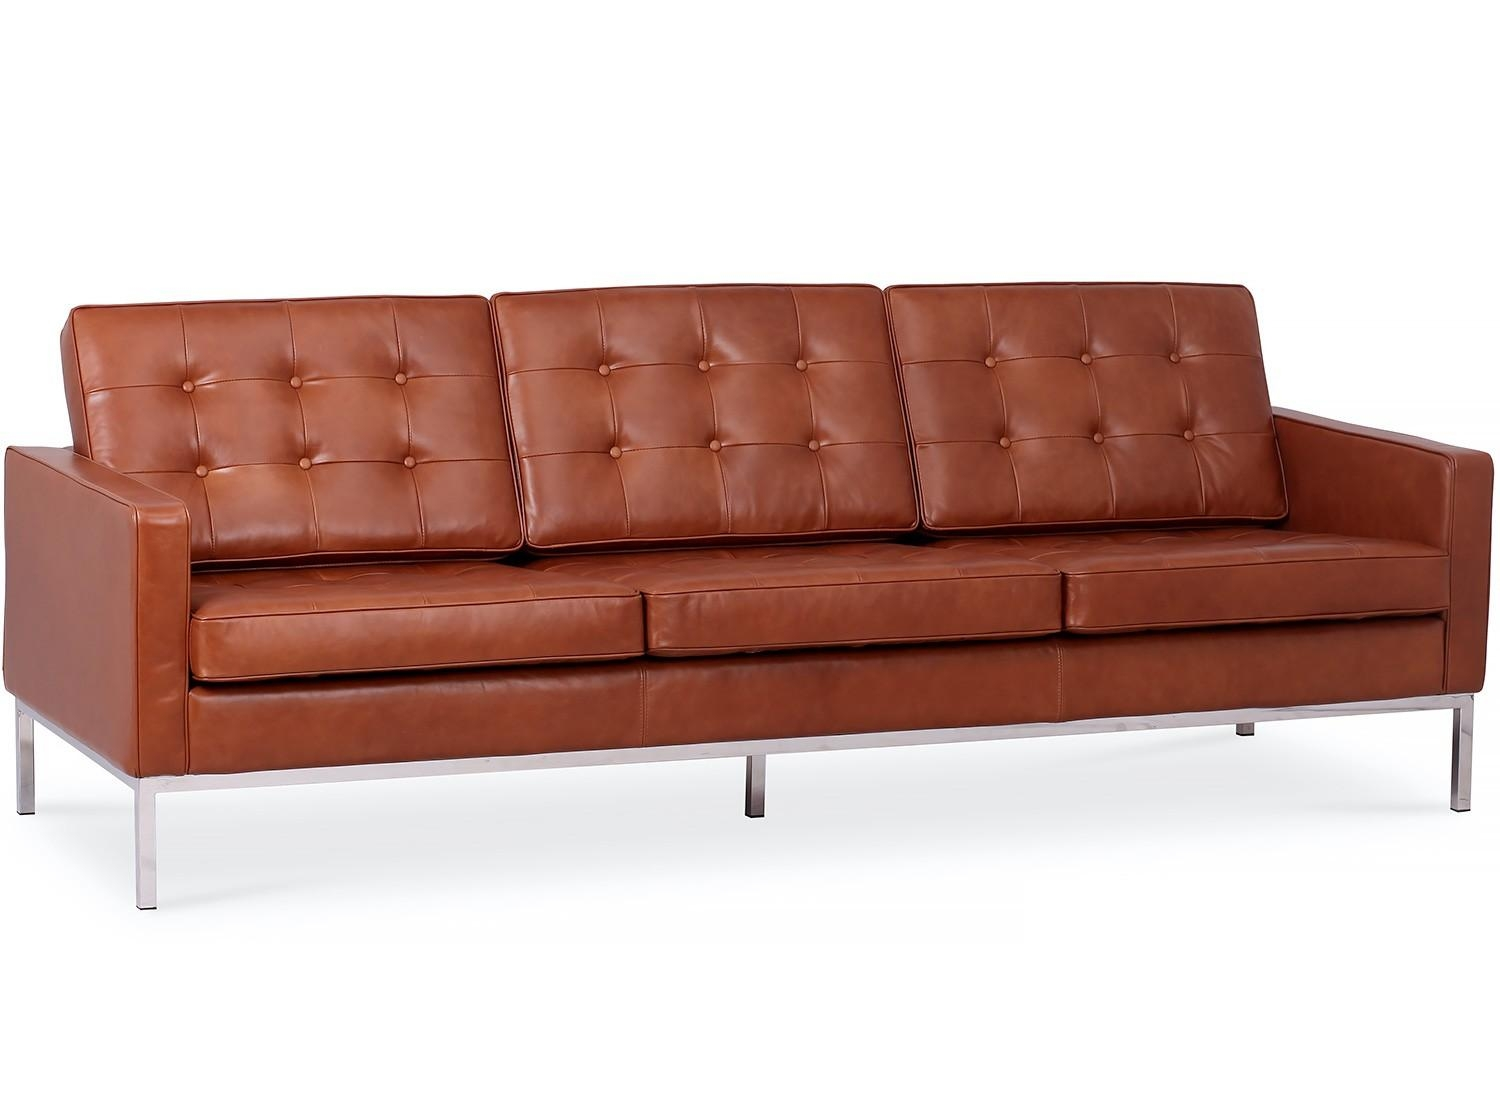 Florence Knoll Sofa 3 Seater Leather (Platinum Replica) Within Florence Knoll 3 Seater Sofas (View 8 of 20)